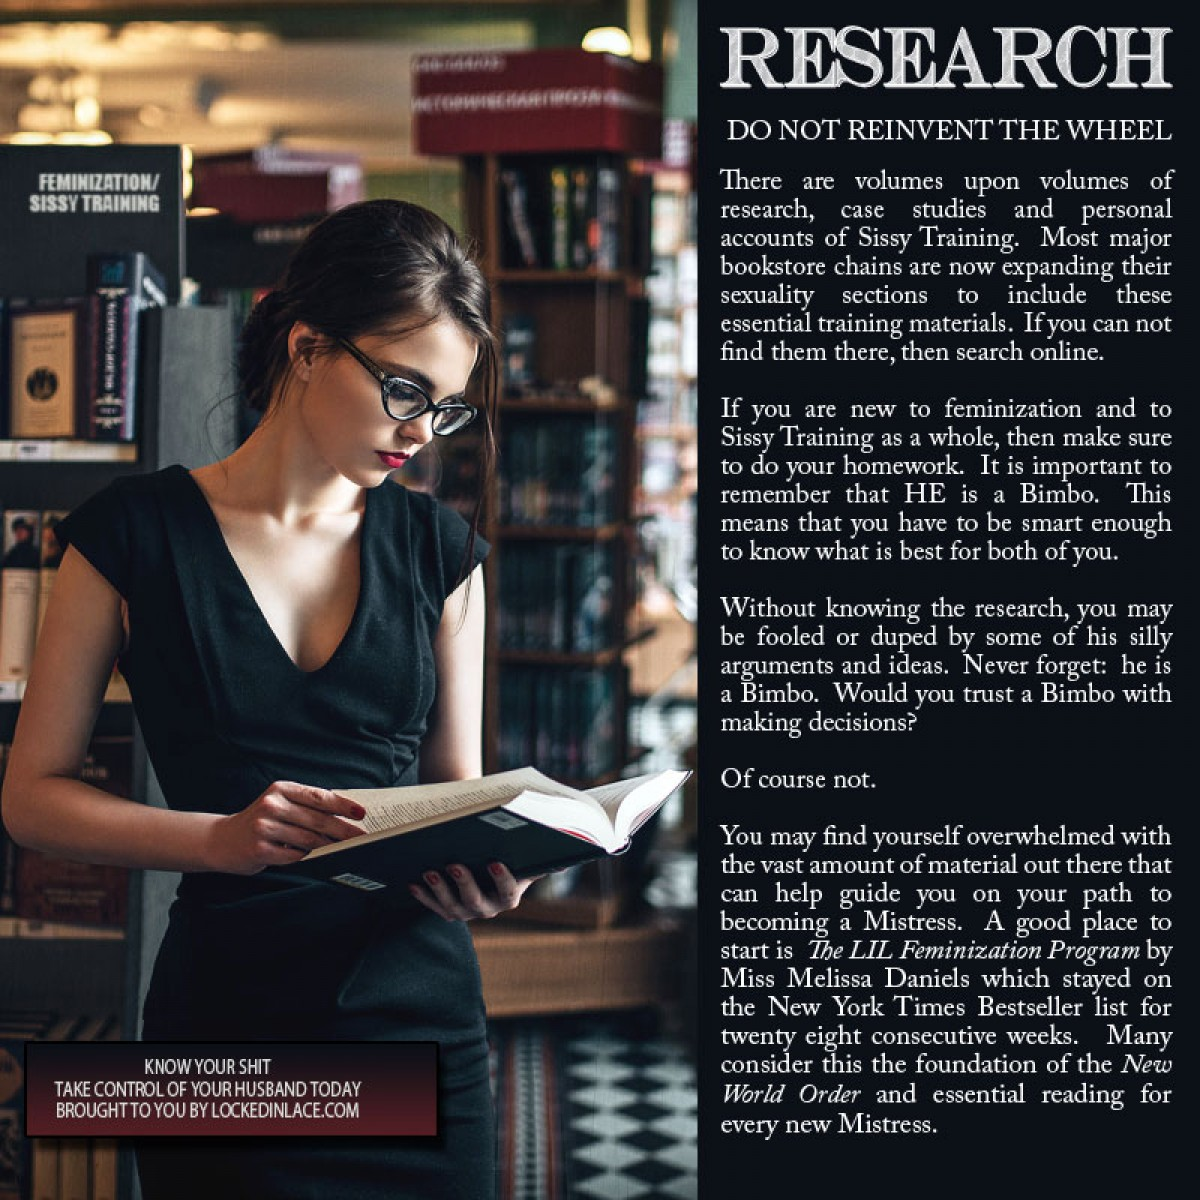 Research - Know Your Shit